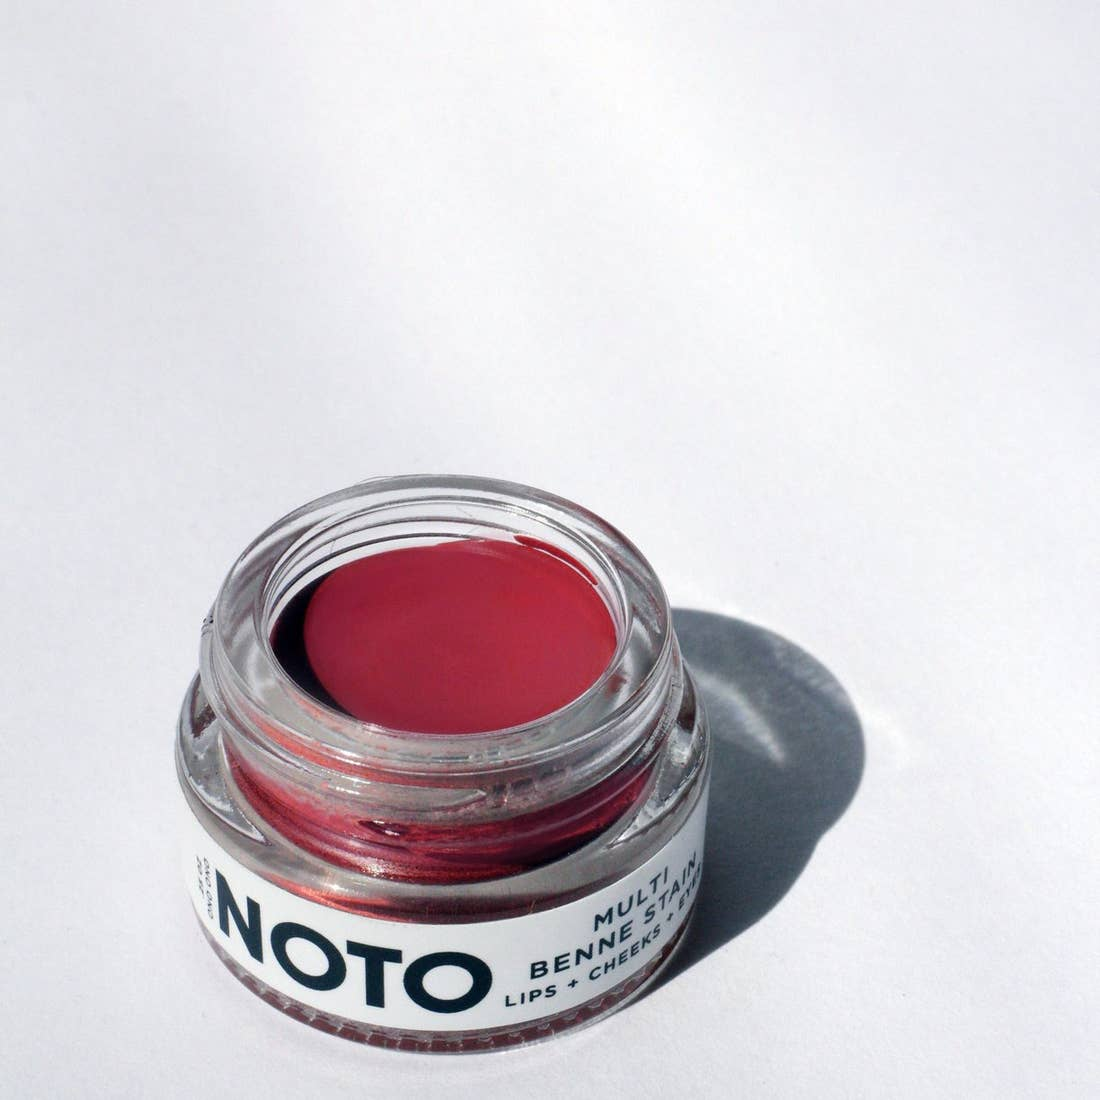 NOTO Touch Multi-Benne Stain